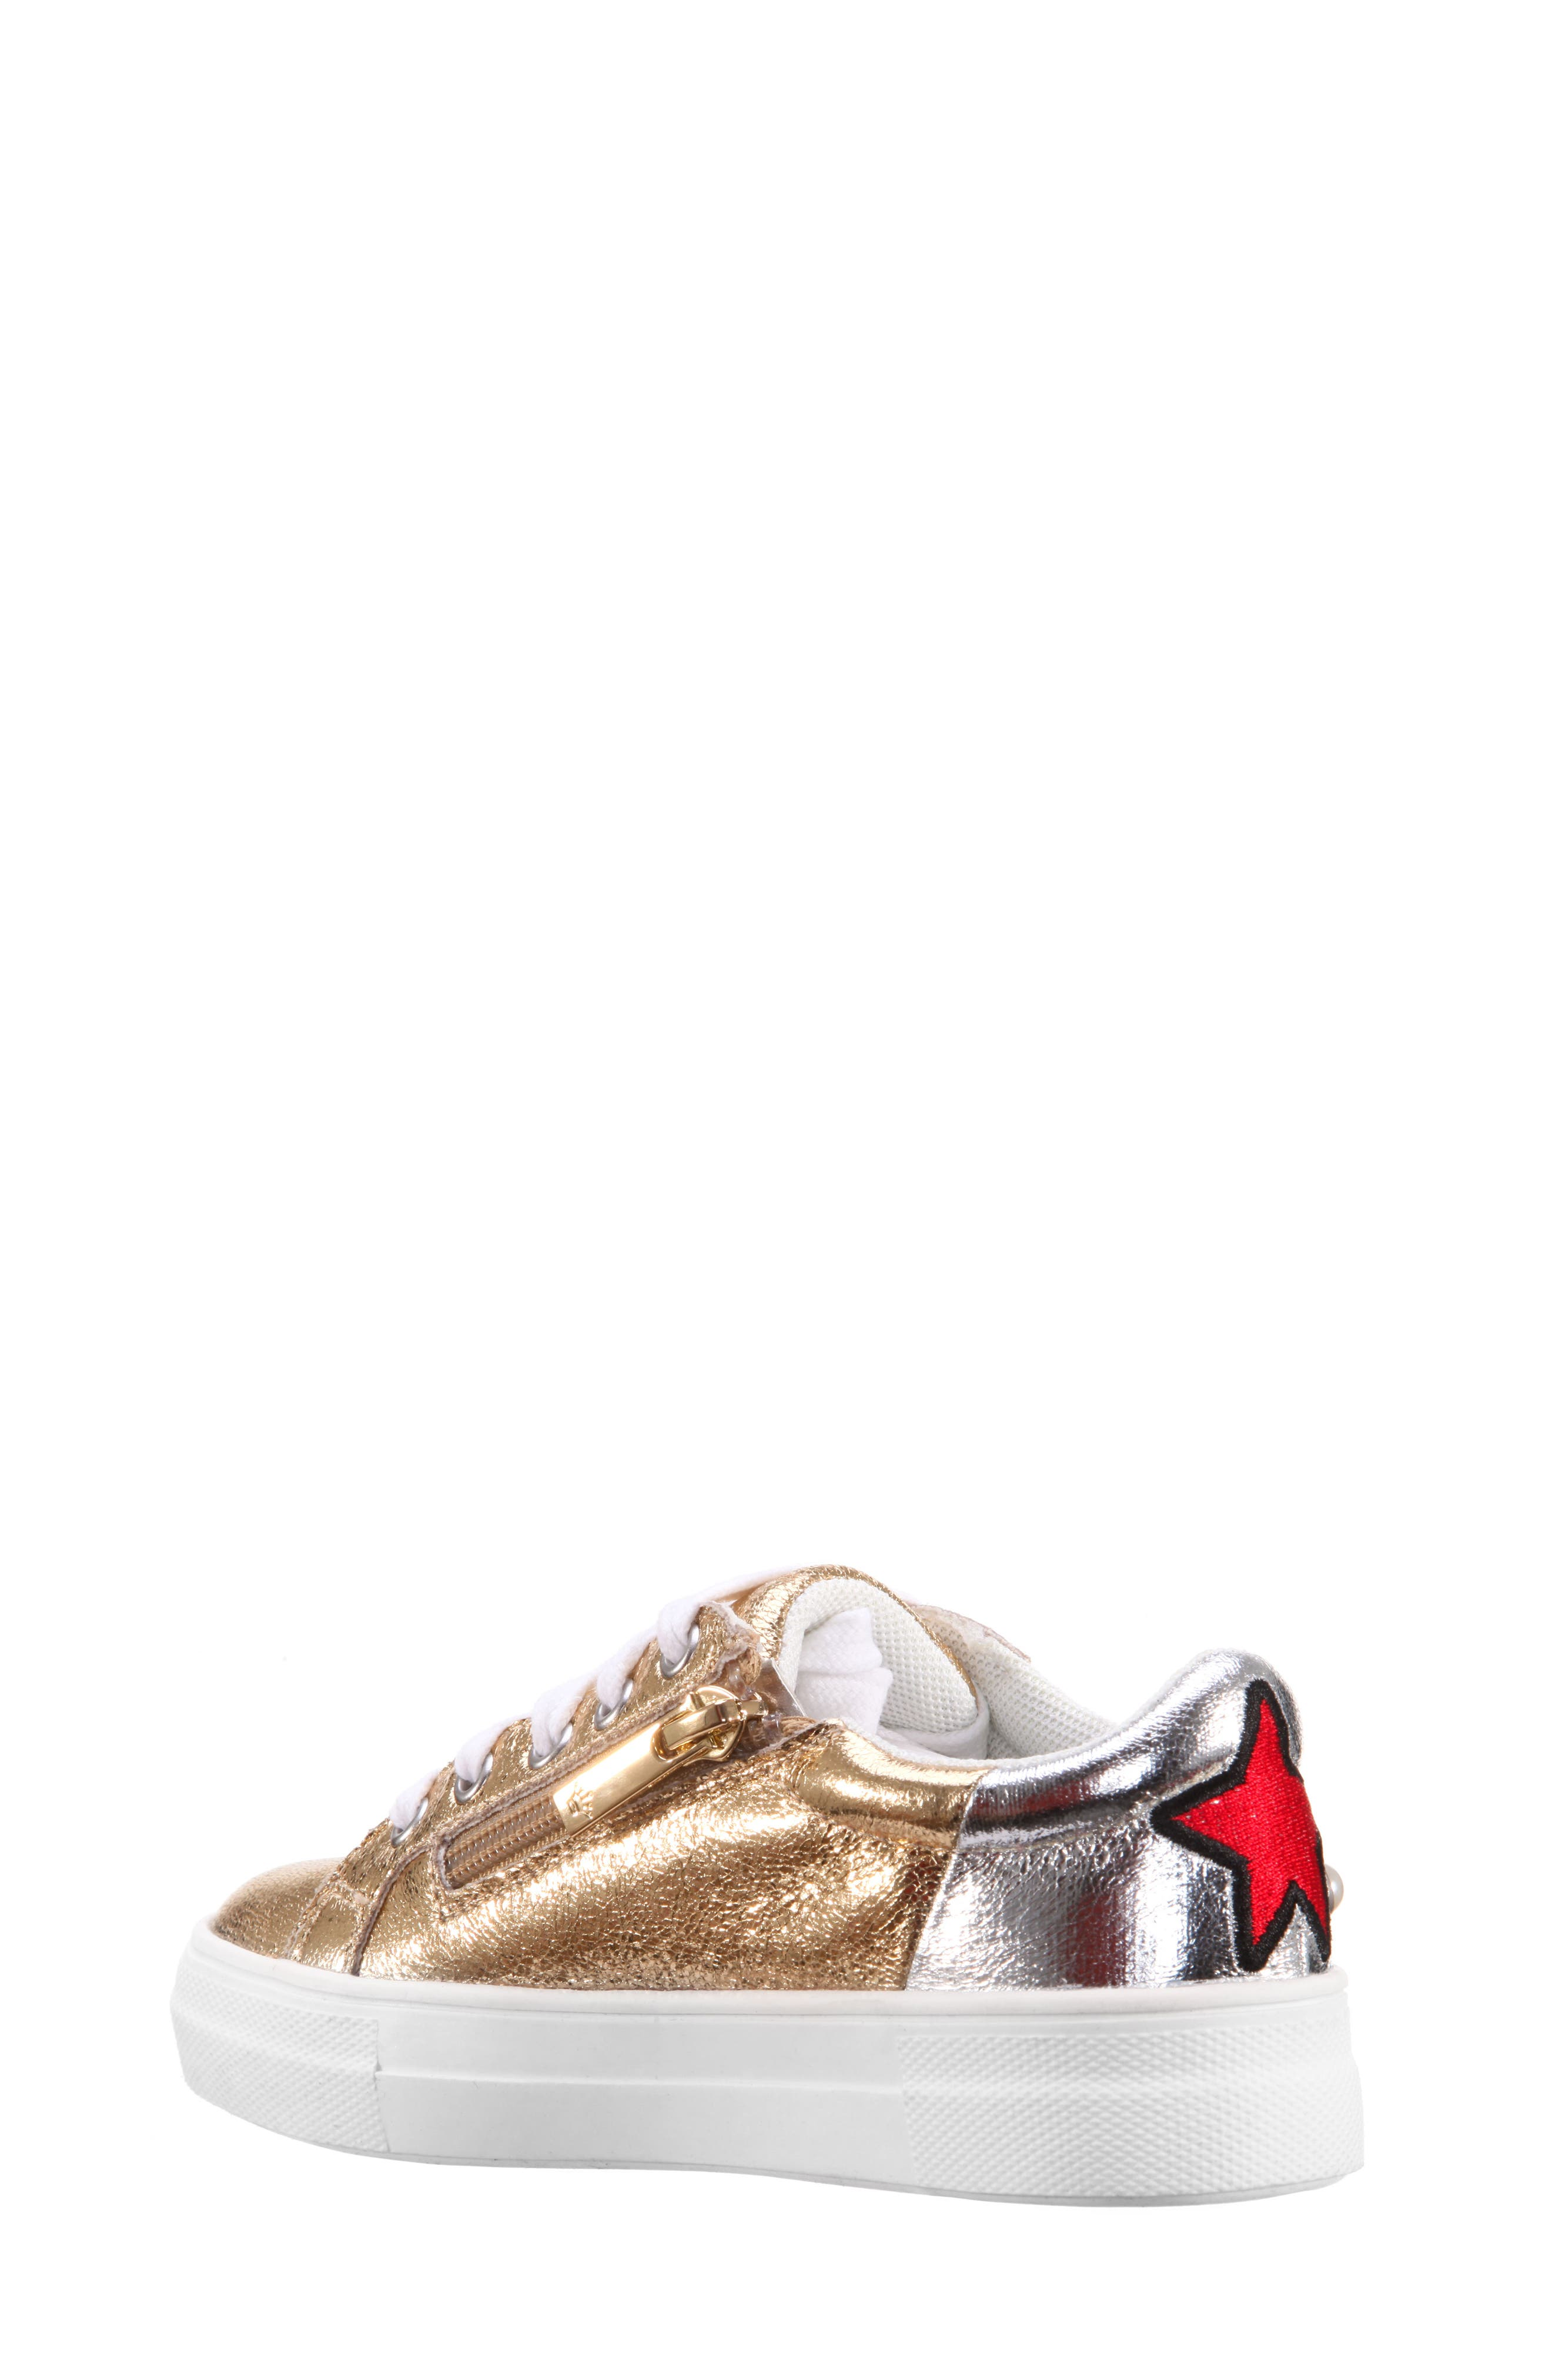 Kryslyn Metallic Sneaker,                             Alternate thumbnail 2, color,                             Platino Crackle